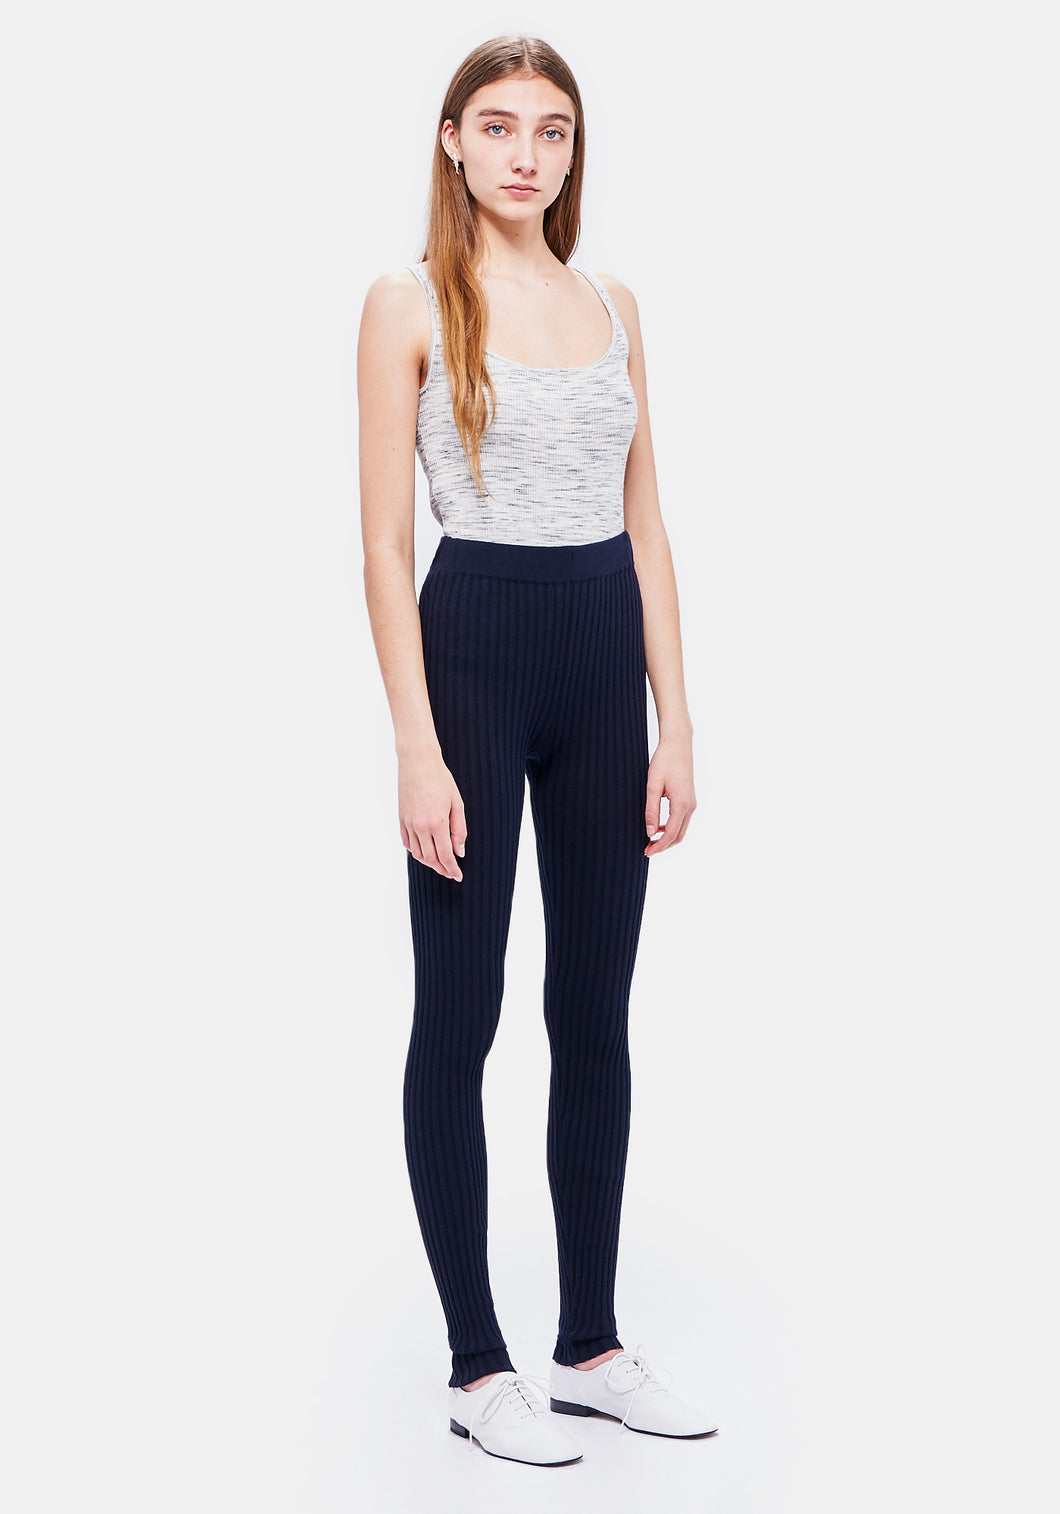 Ansel Leggings